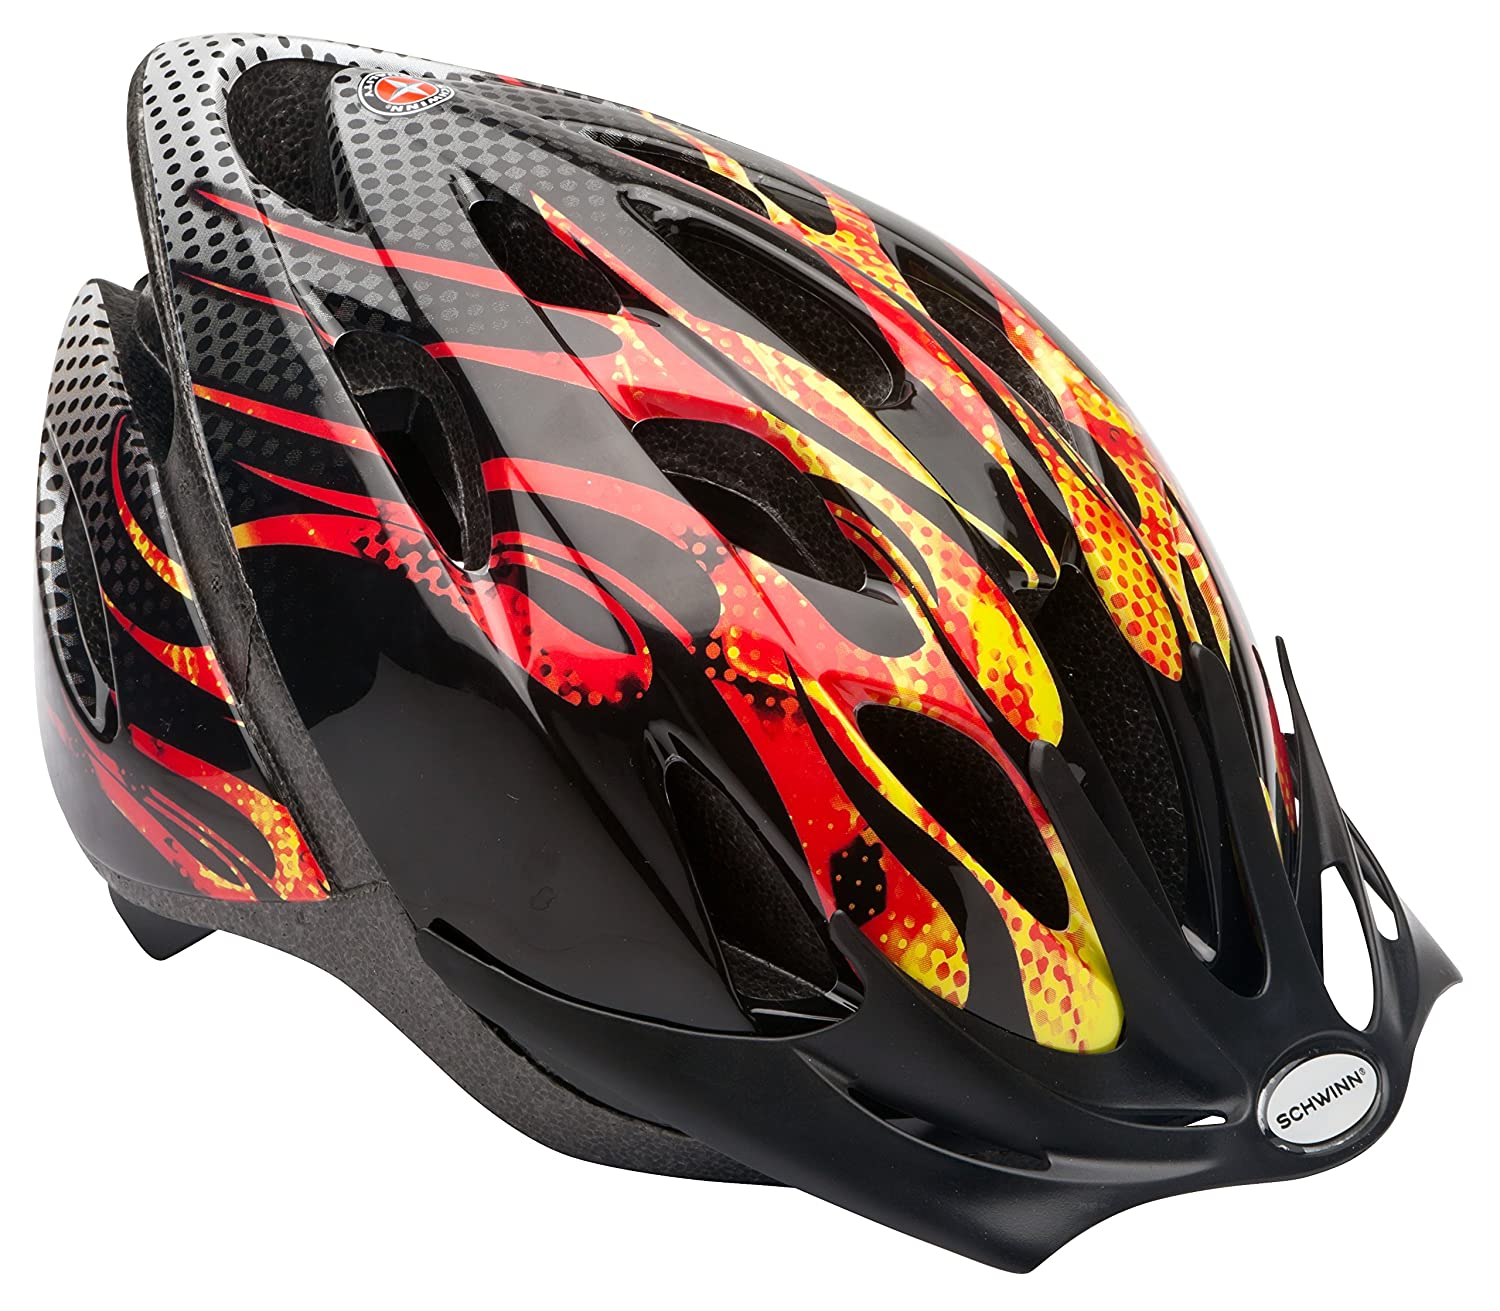 Schwinn Girl's Thrasher Microshell Helmet Pacific Cycle Inc (Accessories) SW76946-2